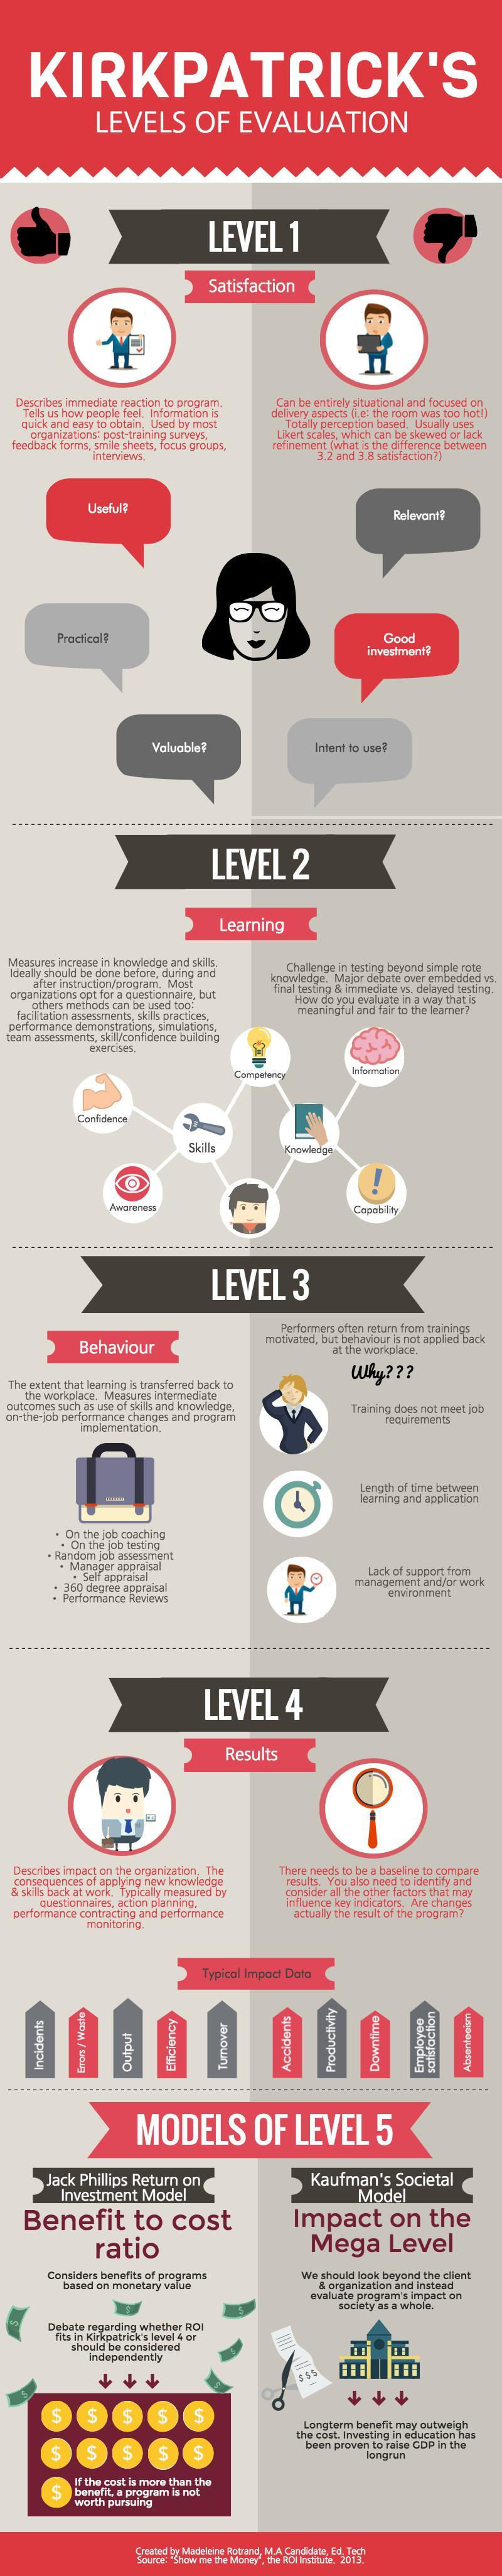 Kirkpatrick's Levels of Evaluation Infographic